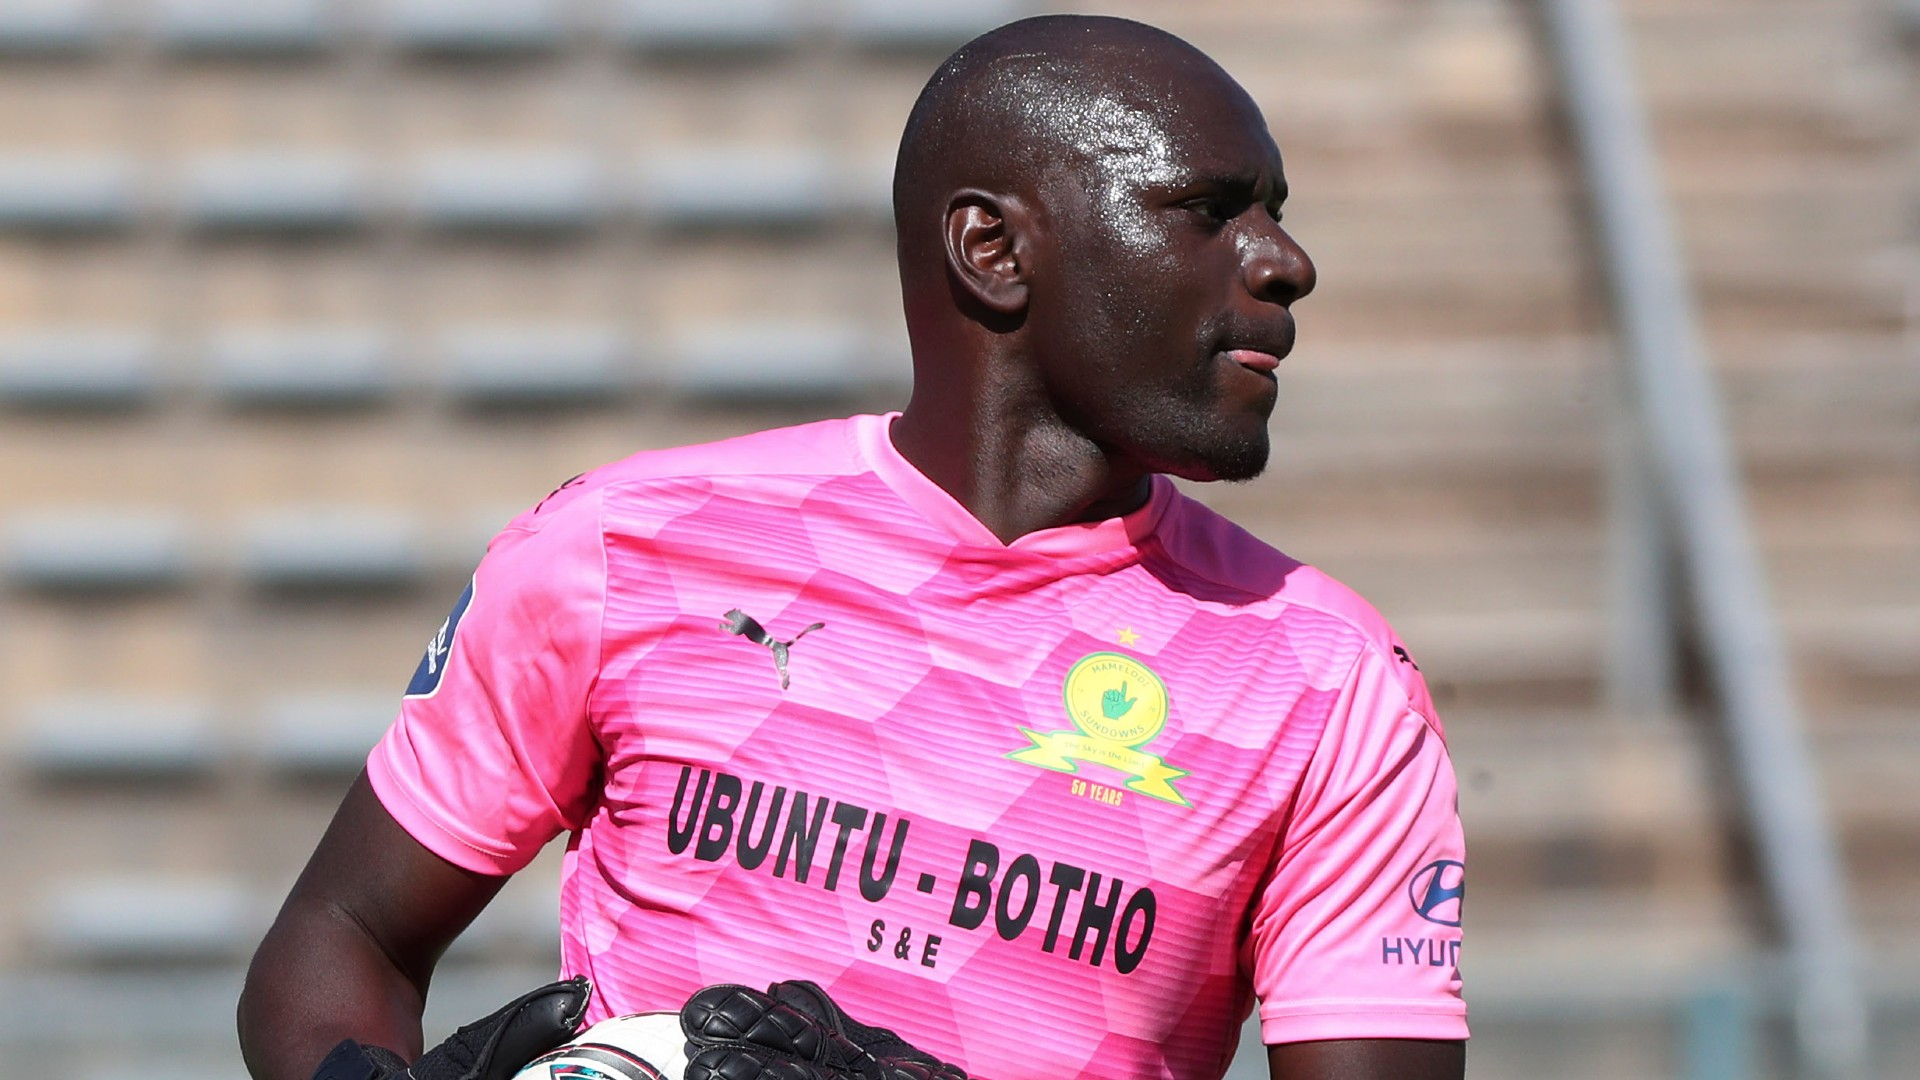 Mamelodi Sundowns player ratings after edging Black Leopards to open gap on top of PSL